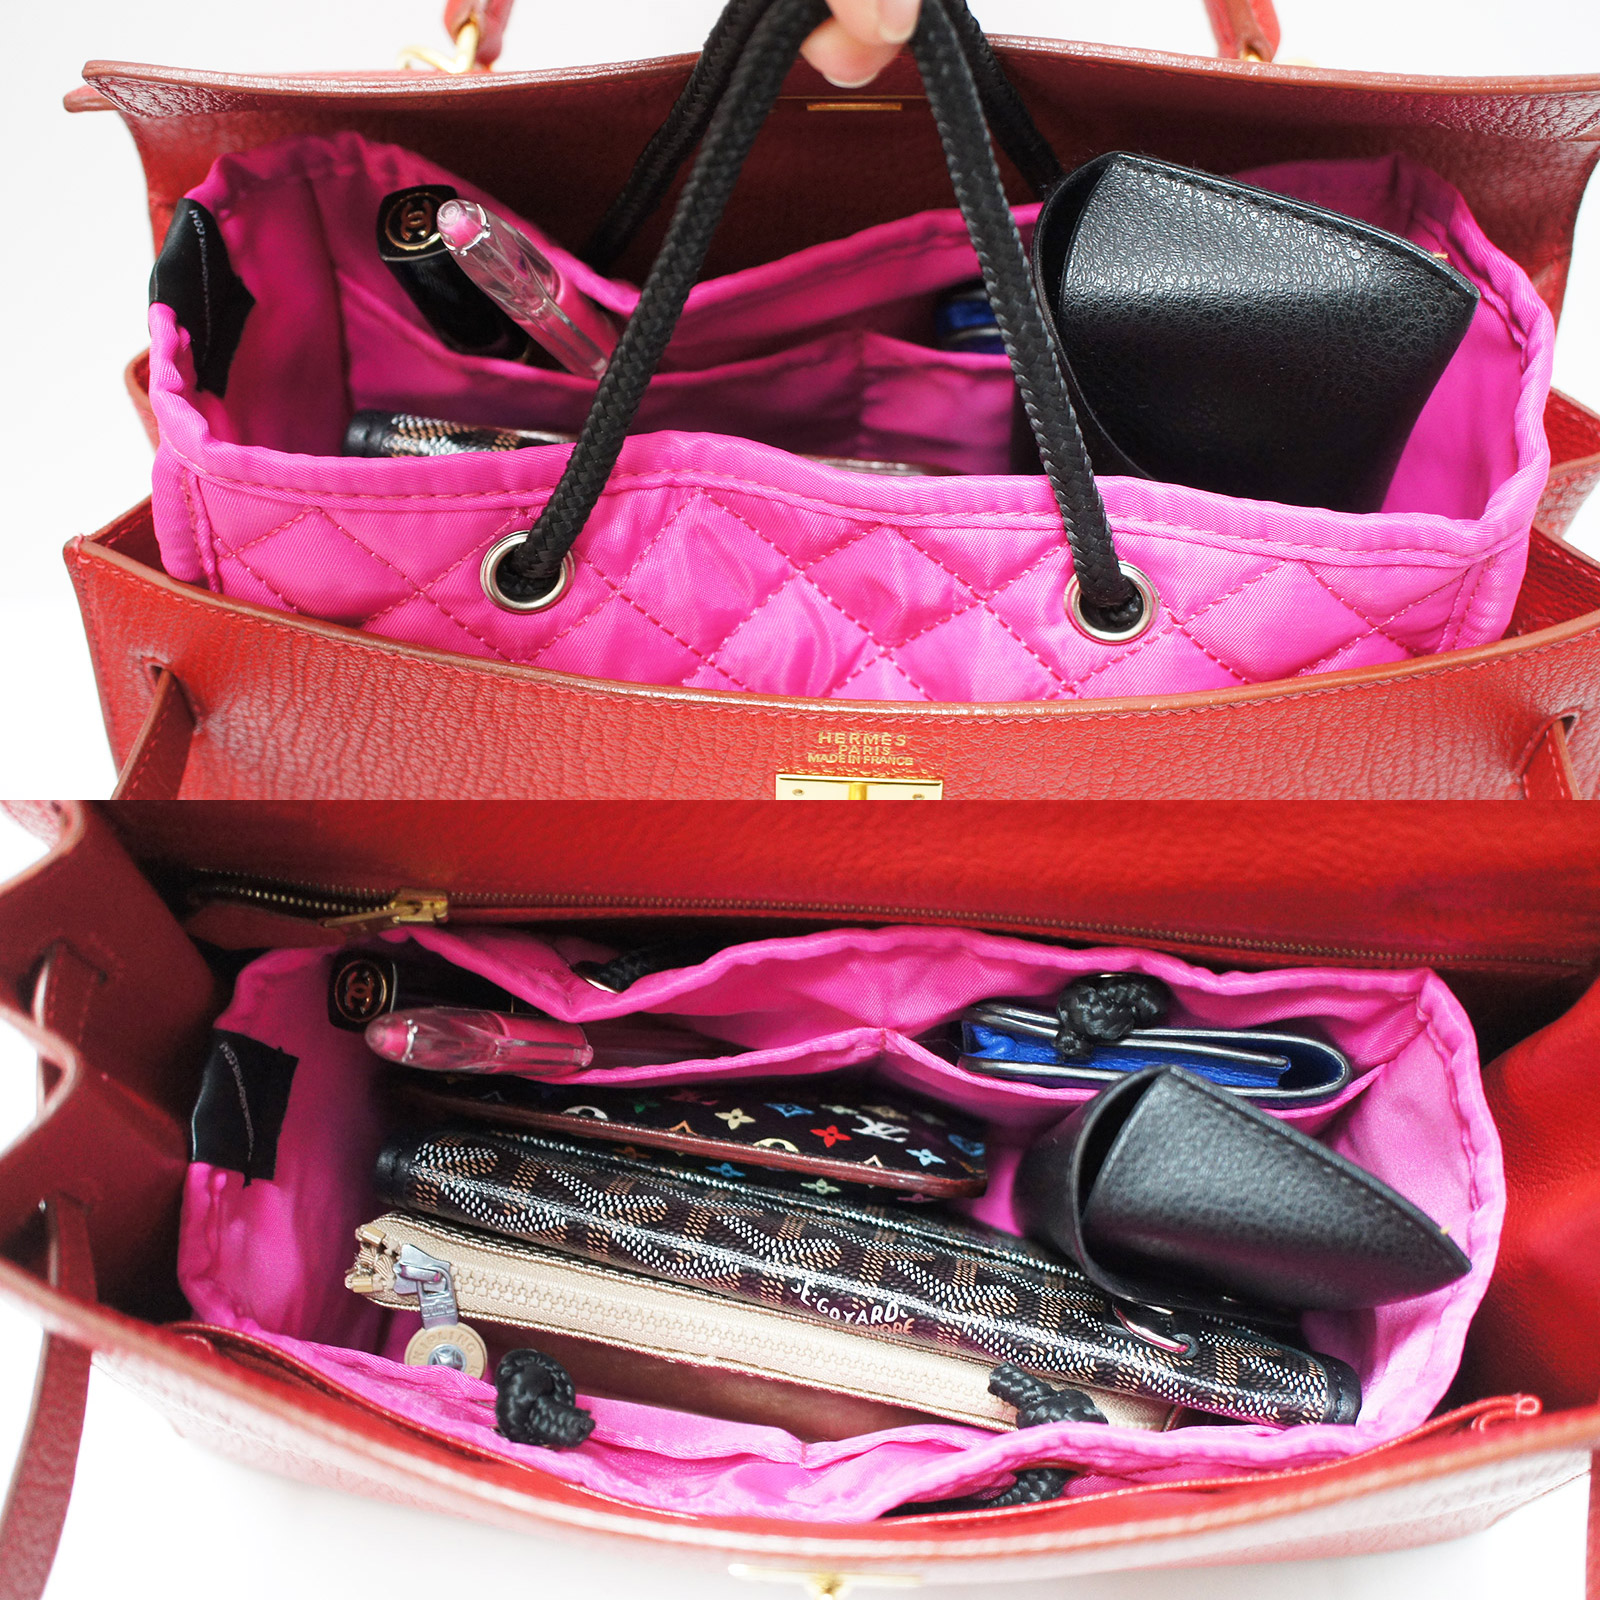 23e97b4fc673 ZOE Quilted Medium Handbag Purse Organizer Insert with Removable Base Fits  HERMES Bag